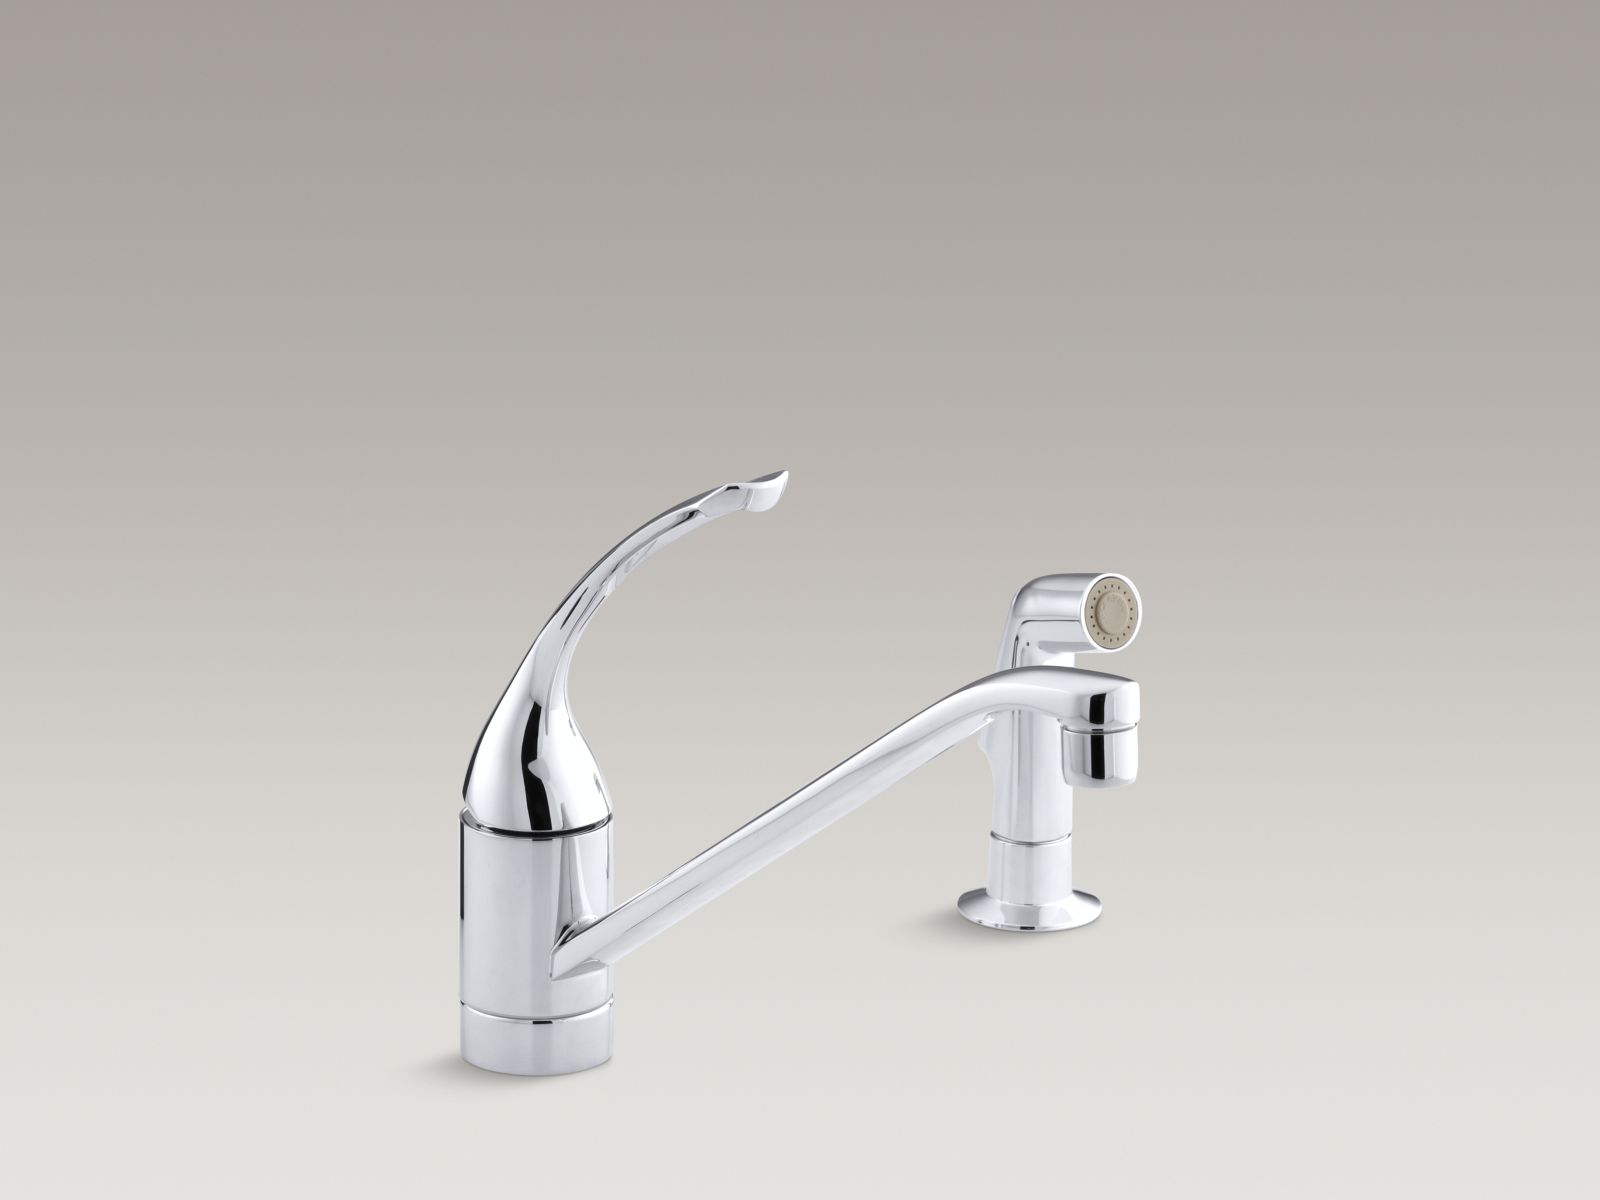 """Kohler K-15176-FL-CP Coralais Single-handle Kitchen Faucet with 10"""" Spout, Sidespray, and Loop Handle Polished Chrome"""